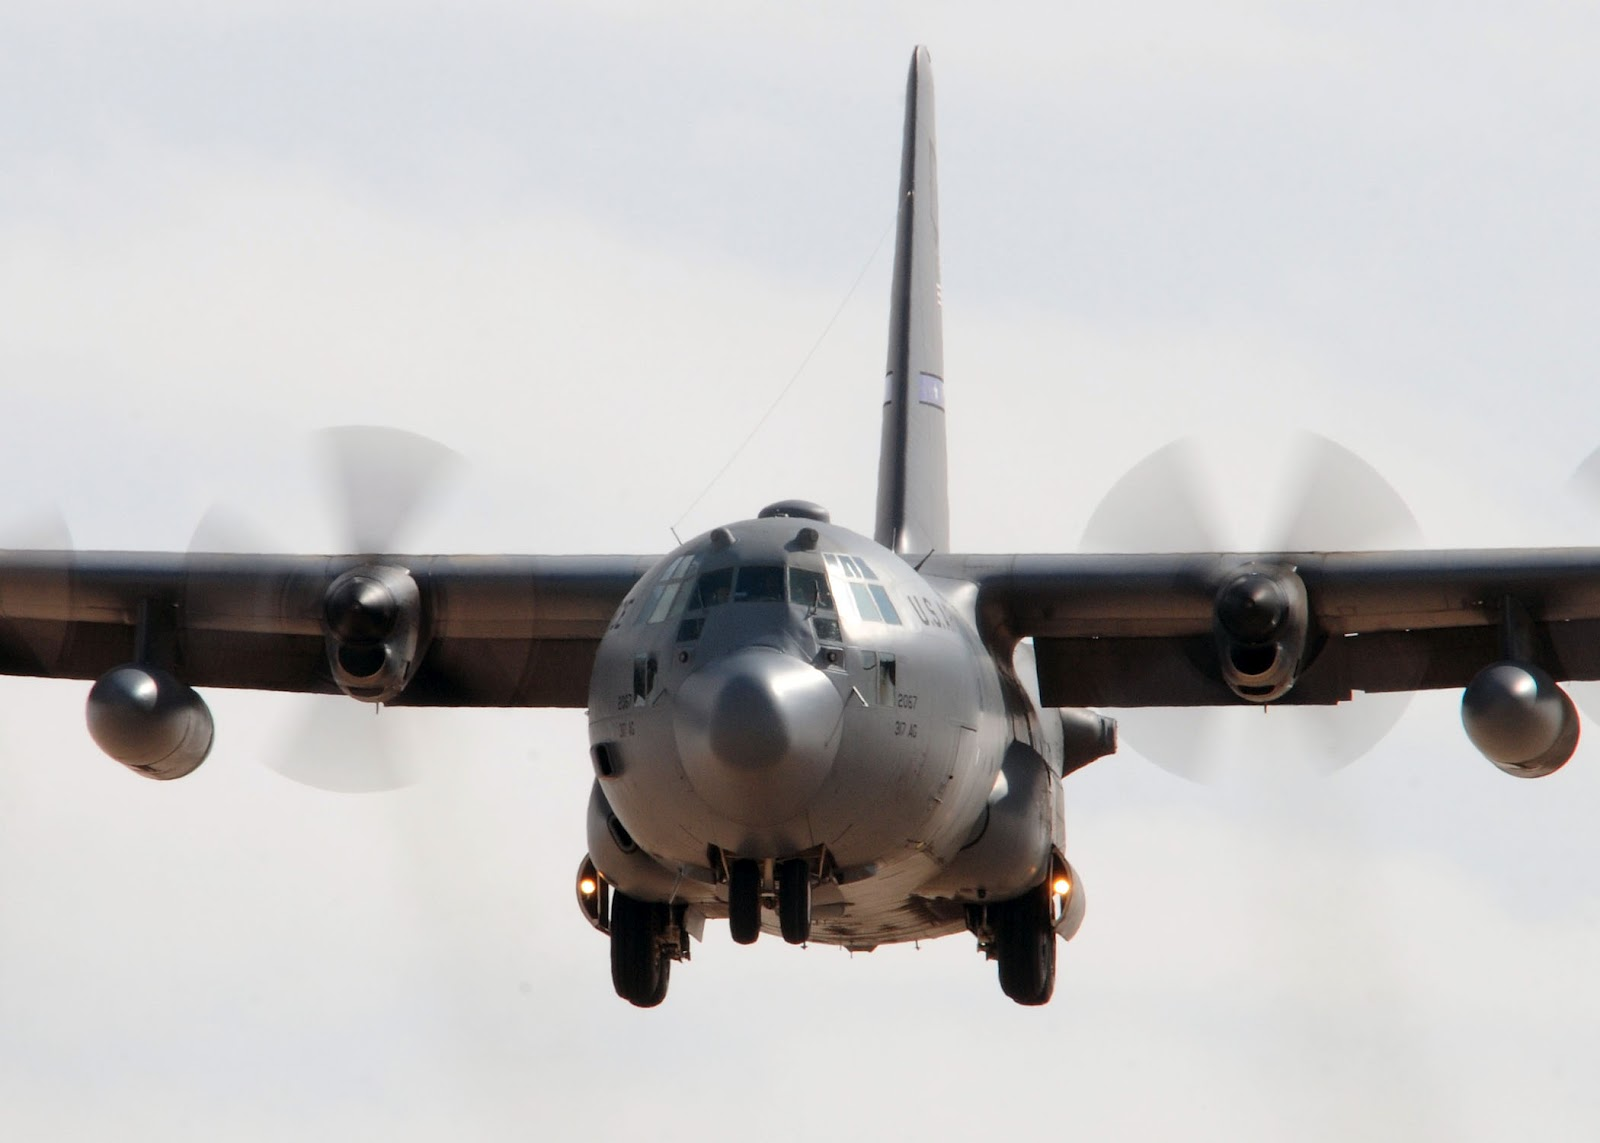 Wallpaper C-130 Hercules - HD Wallpapers